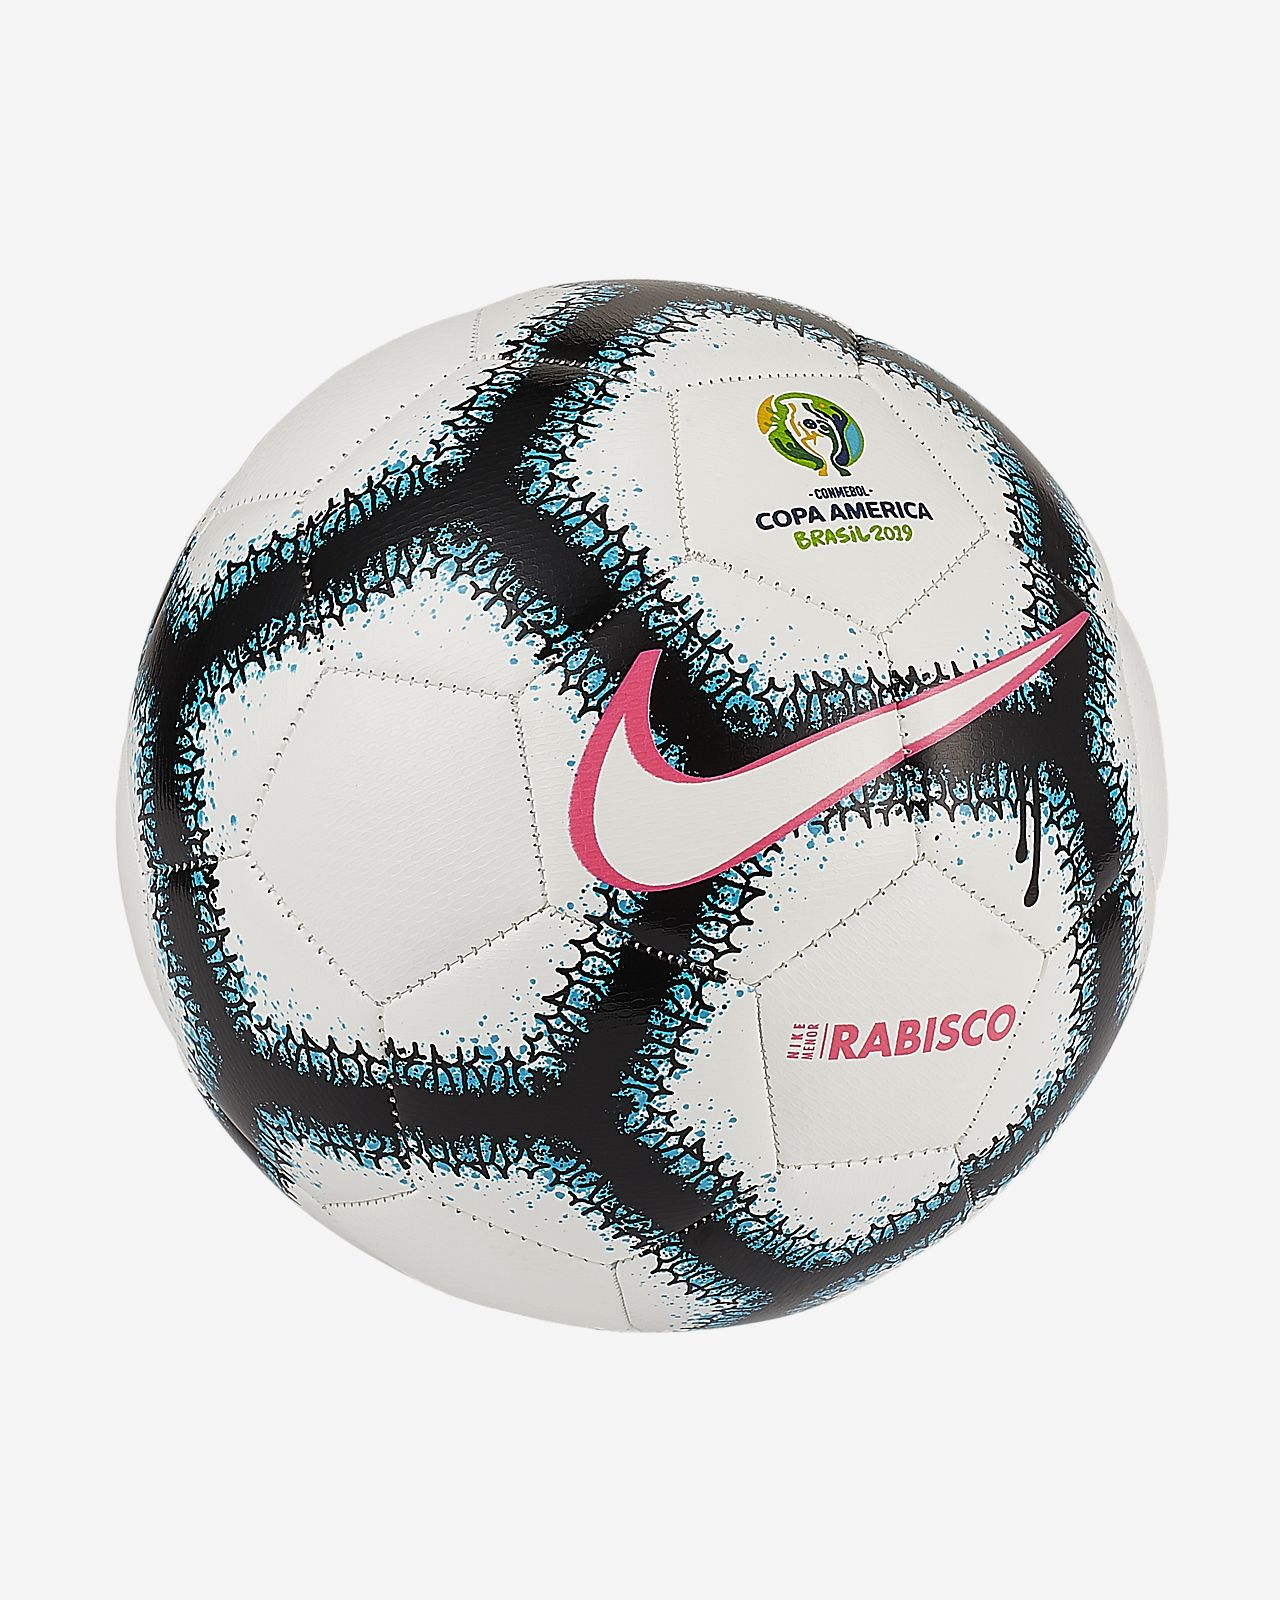 Ballon de football Nike Menor X Rabisco Copa America 2019